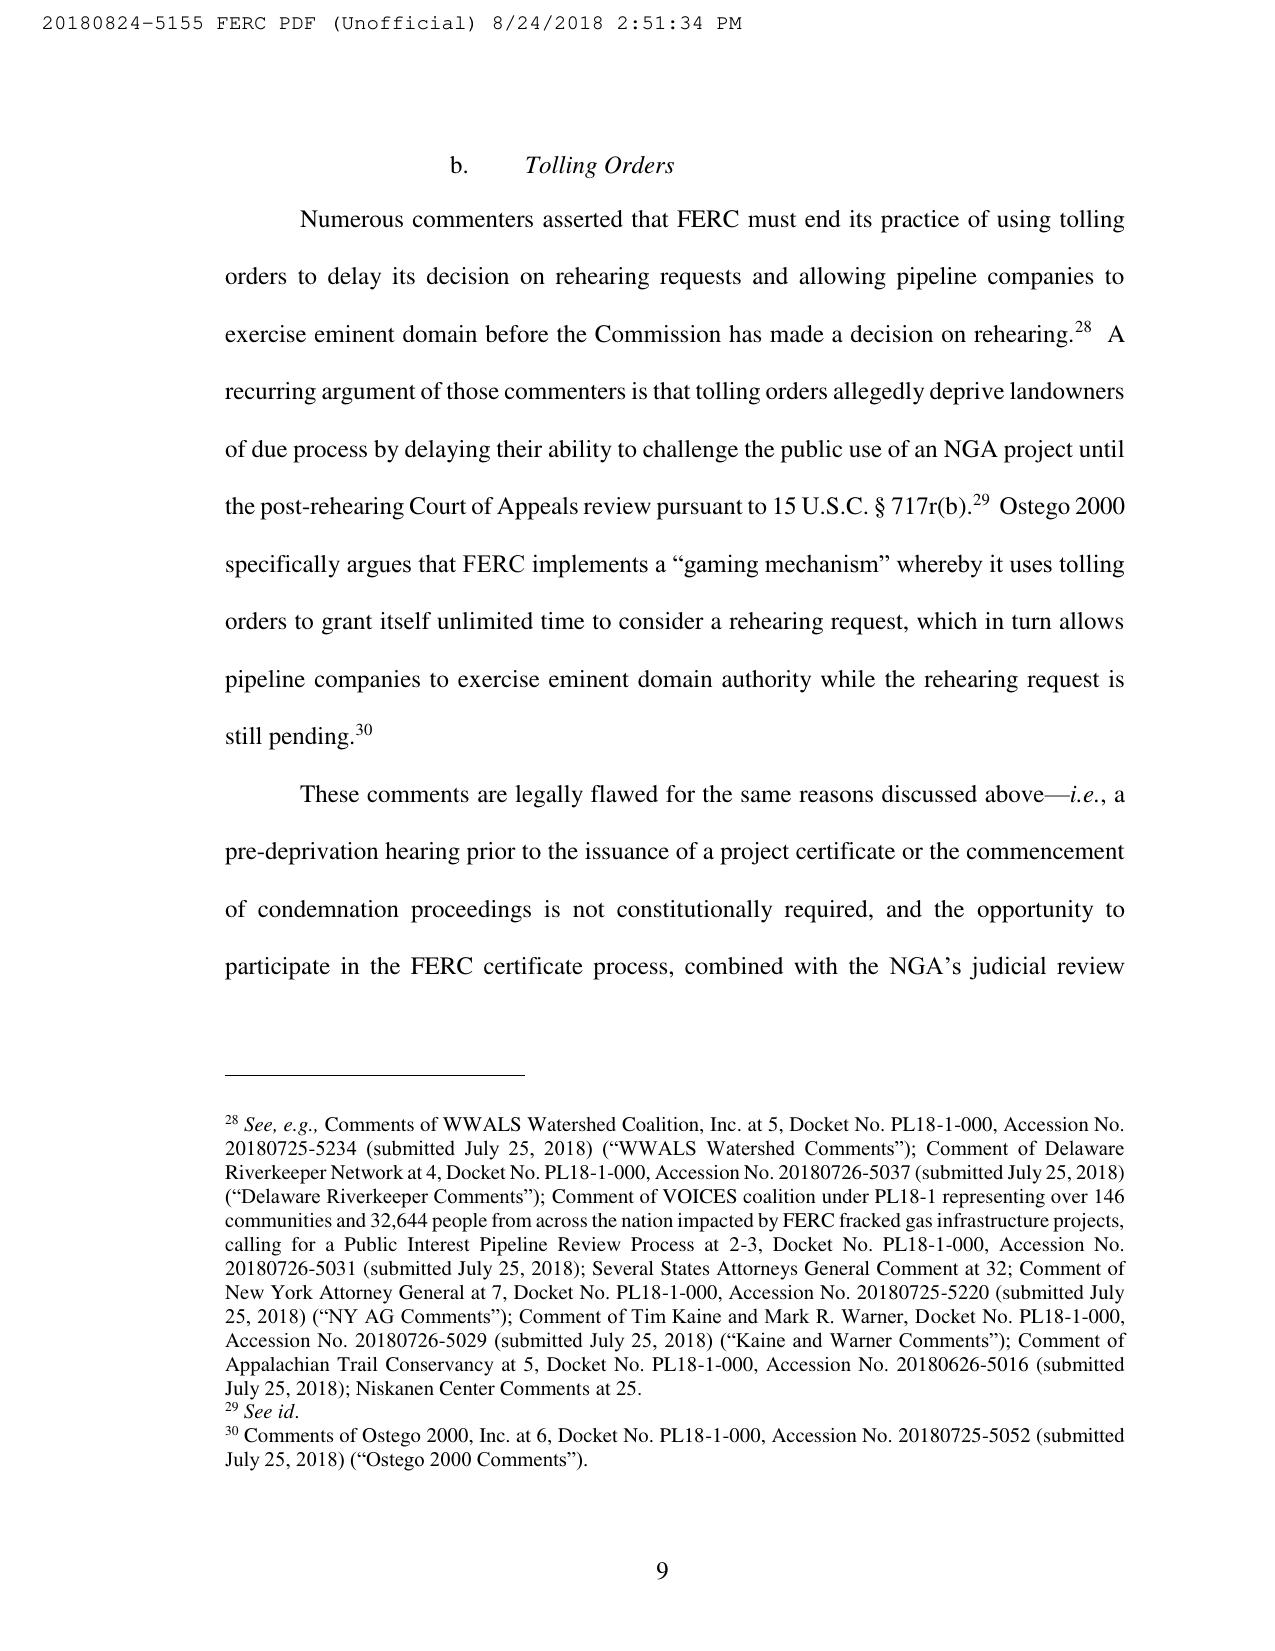 1275x1651 Page 9: Tolling Orders, Pages, in Spectra responds for FERC in pipeline certificate rulemaking, by Spectra Energy Partners, for WWALS.net, 25 August 2018